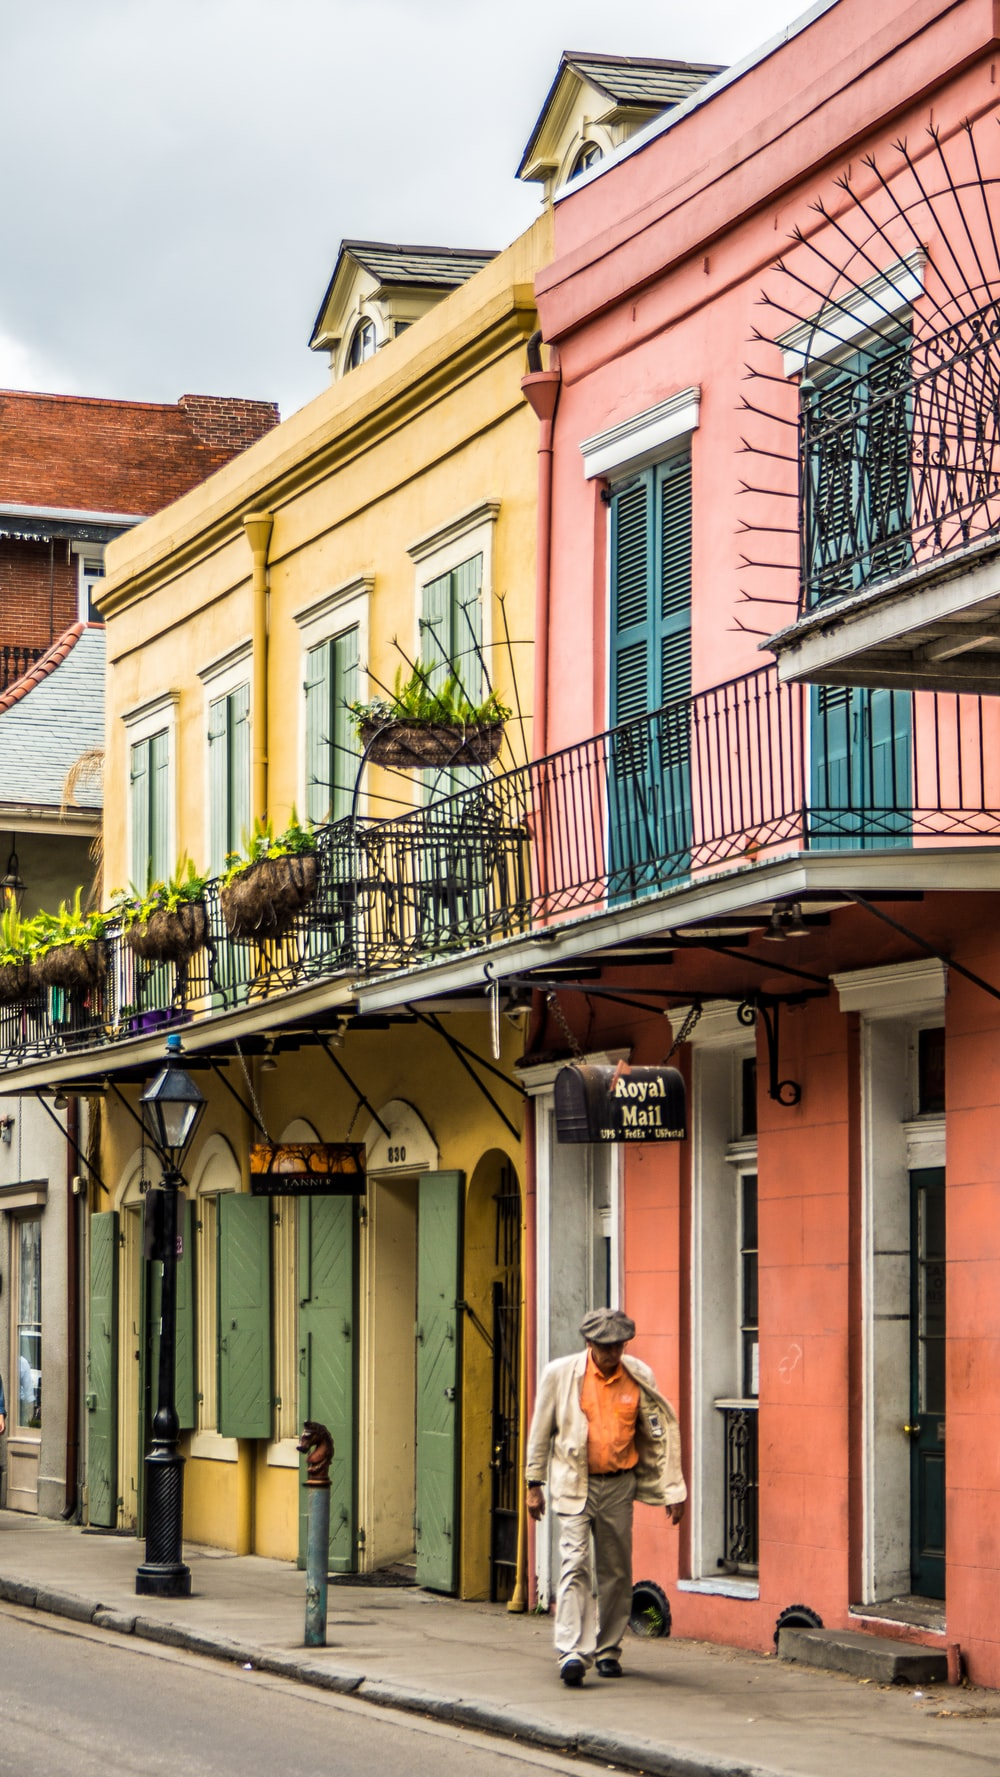 500 New Orleans Pictures Download Images on Unsplash 1000x1777